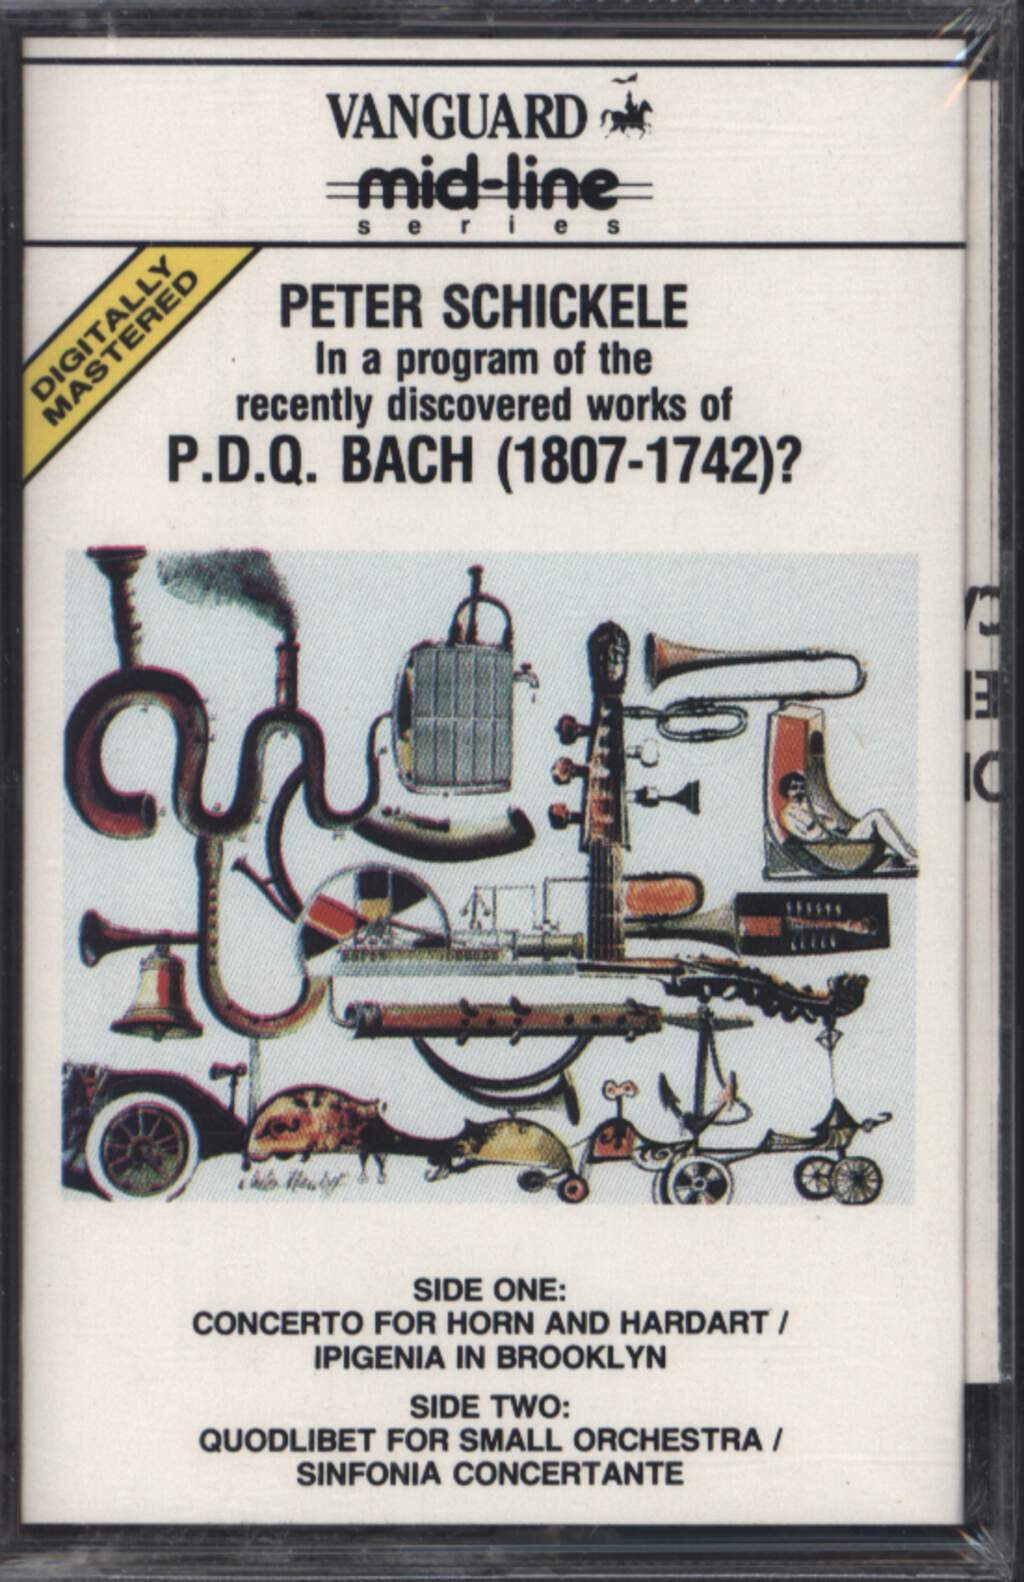 Peter Schickele: Peter Schickele Presenting P.D.Q. Bach (1807-1742)? Chamber Orchestra Under The Direction Of Jorge Mester, Compact Cassette